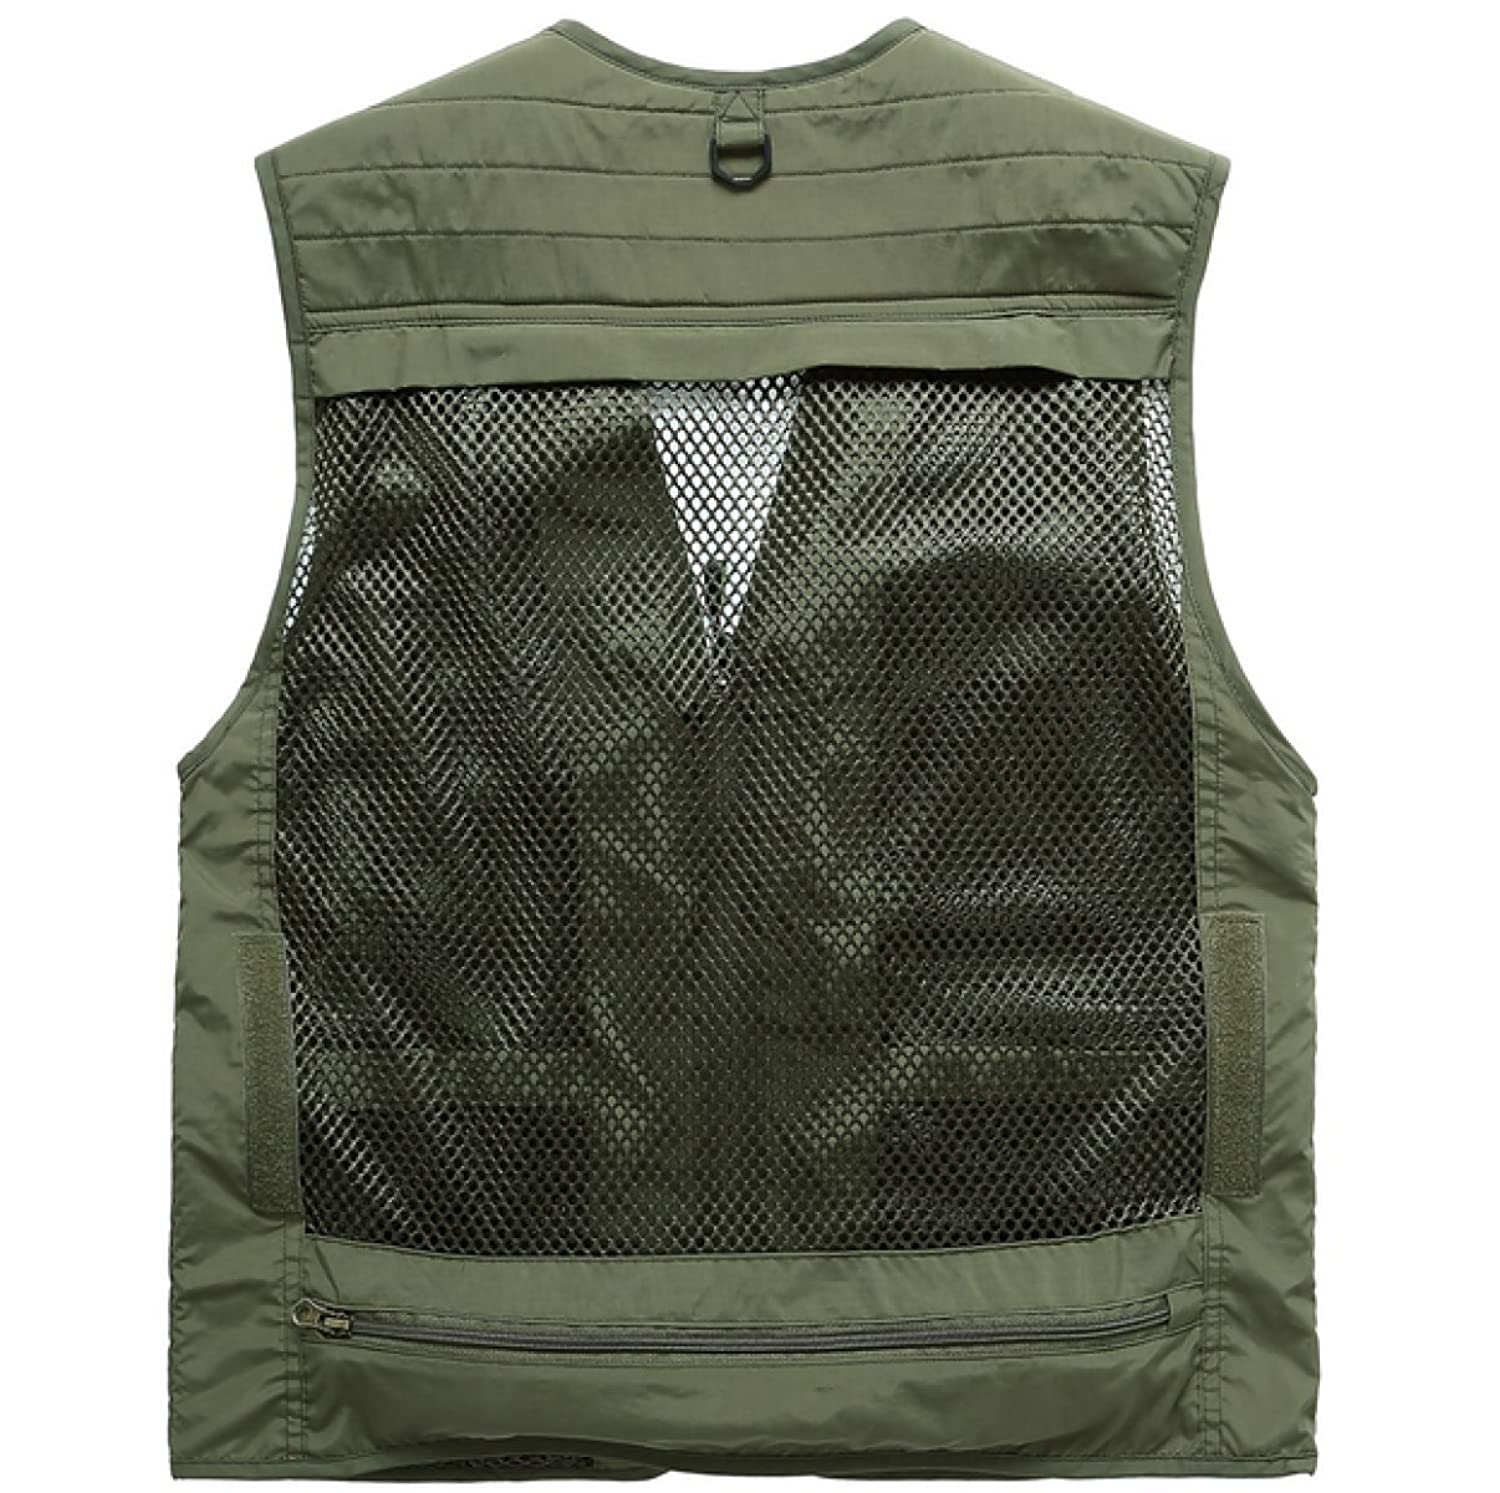 Casual Outdoor Vest Muti-Pockets Leisure Jacket Fishing Photography Journalist